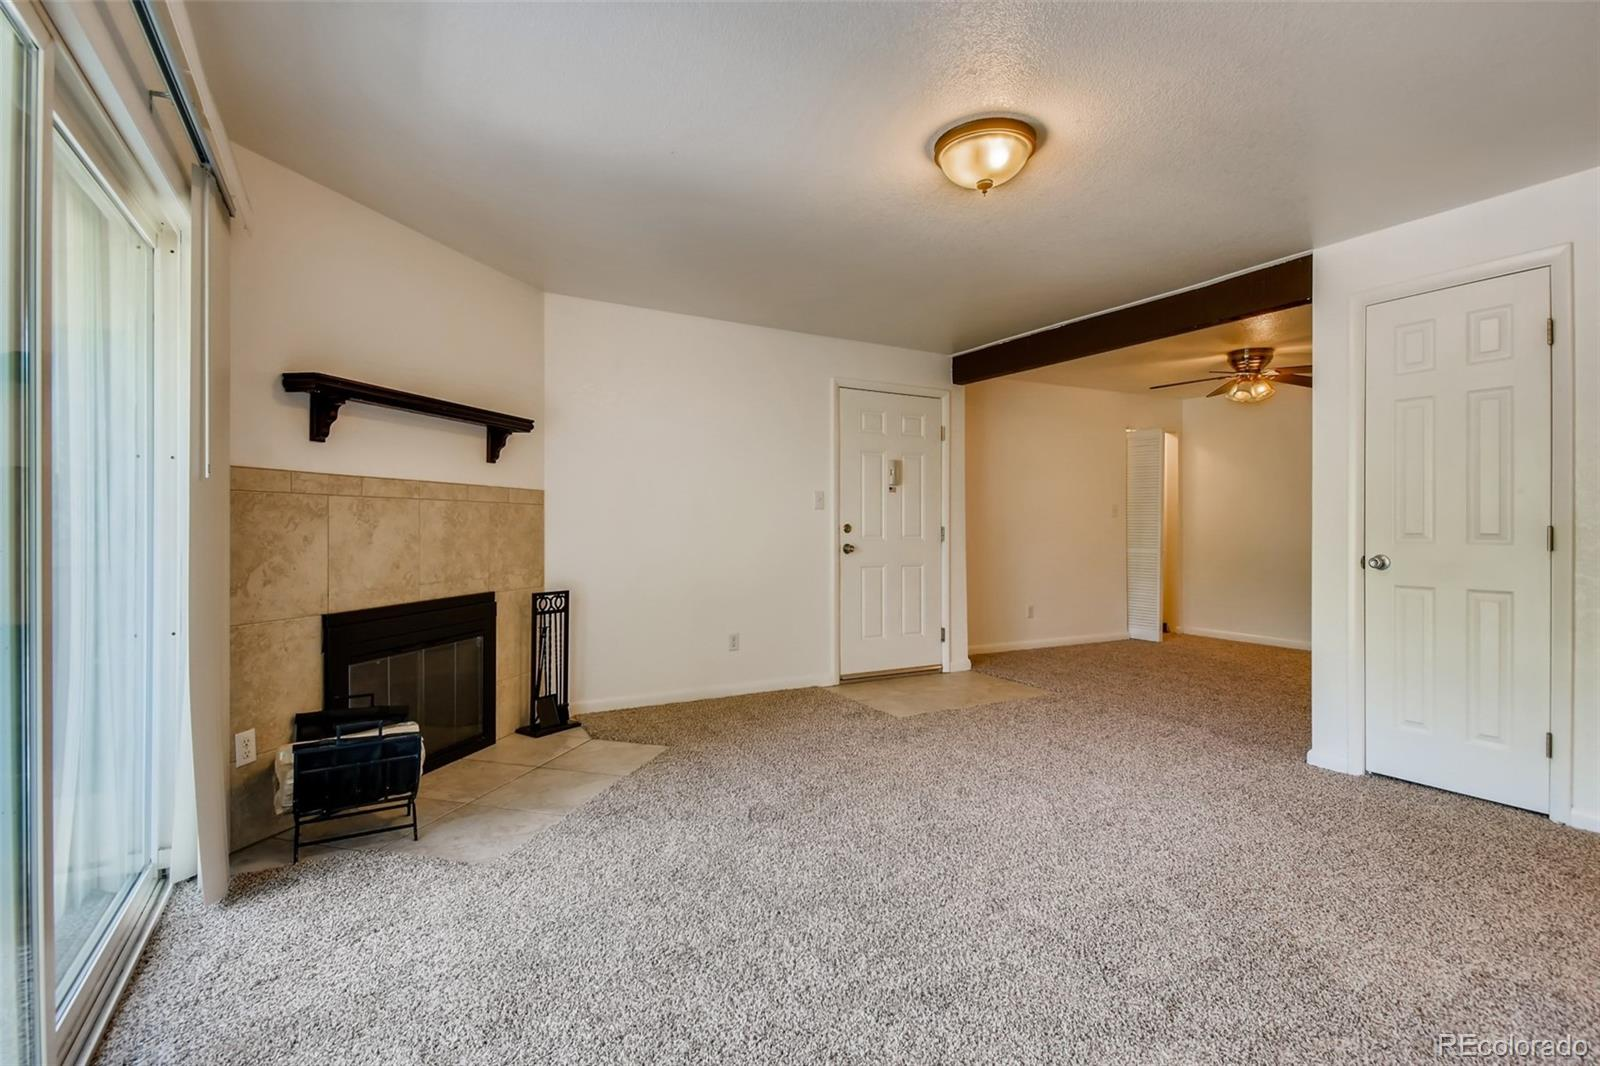 MLS# 4354857 - 8 - 12100 Melody Drive #301, Westminster, CO 80234